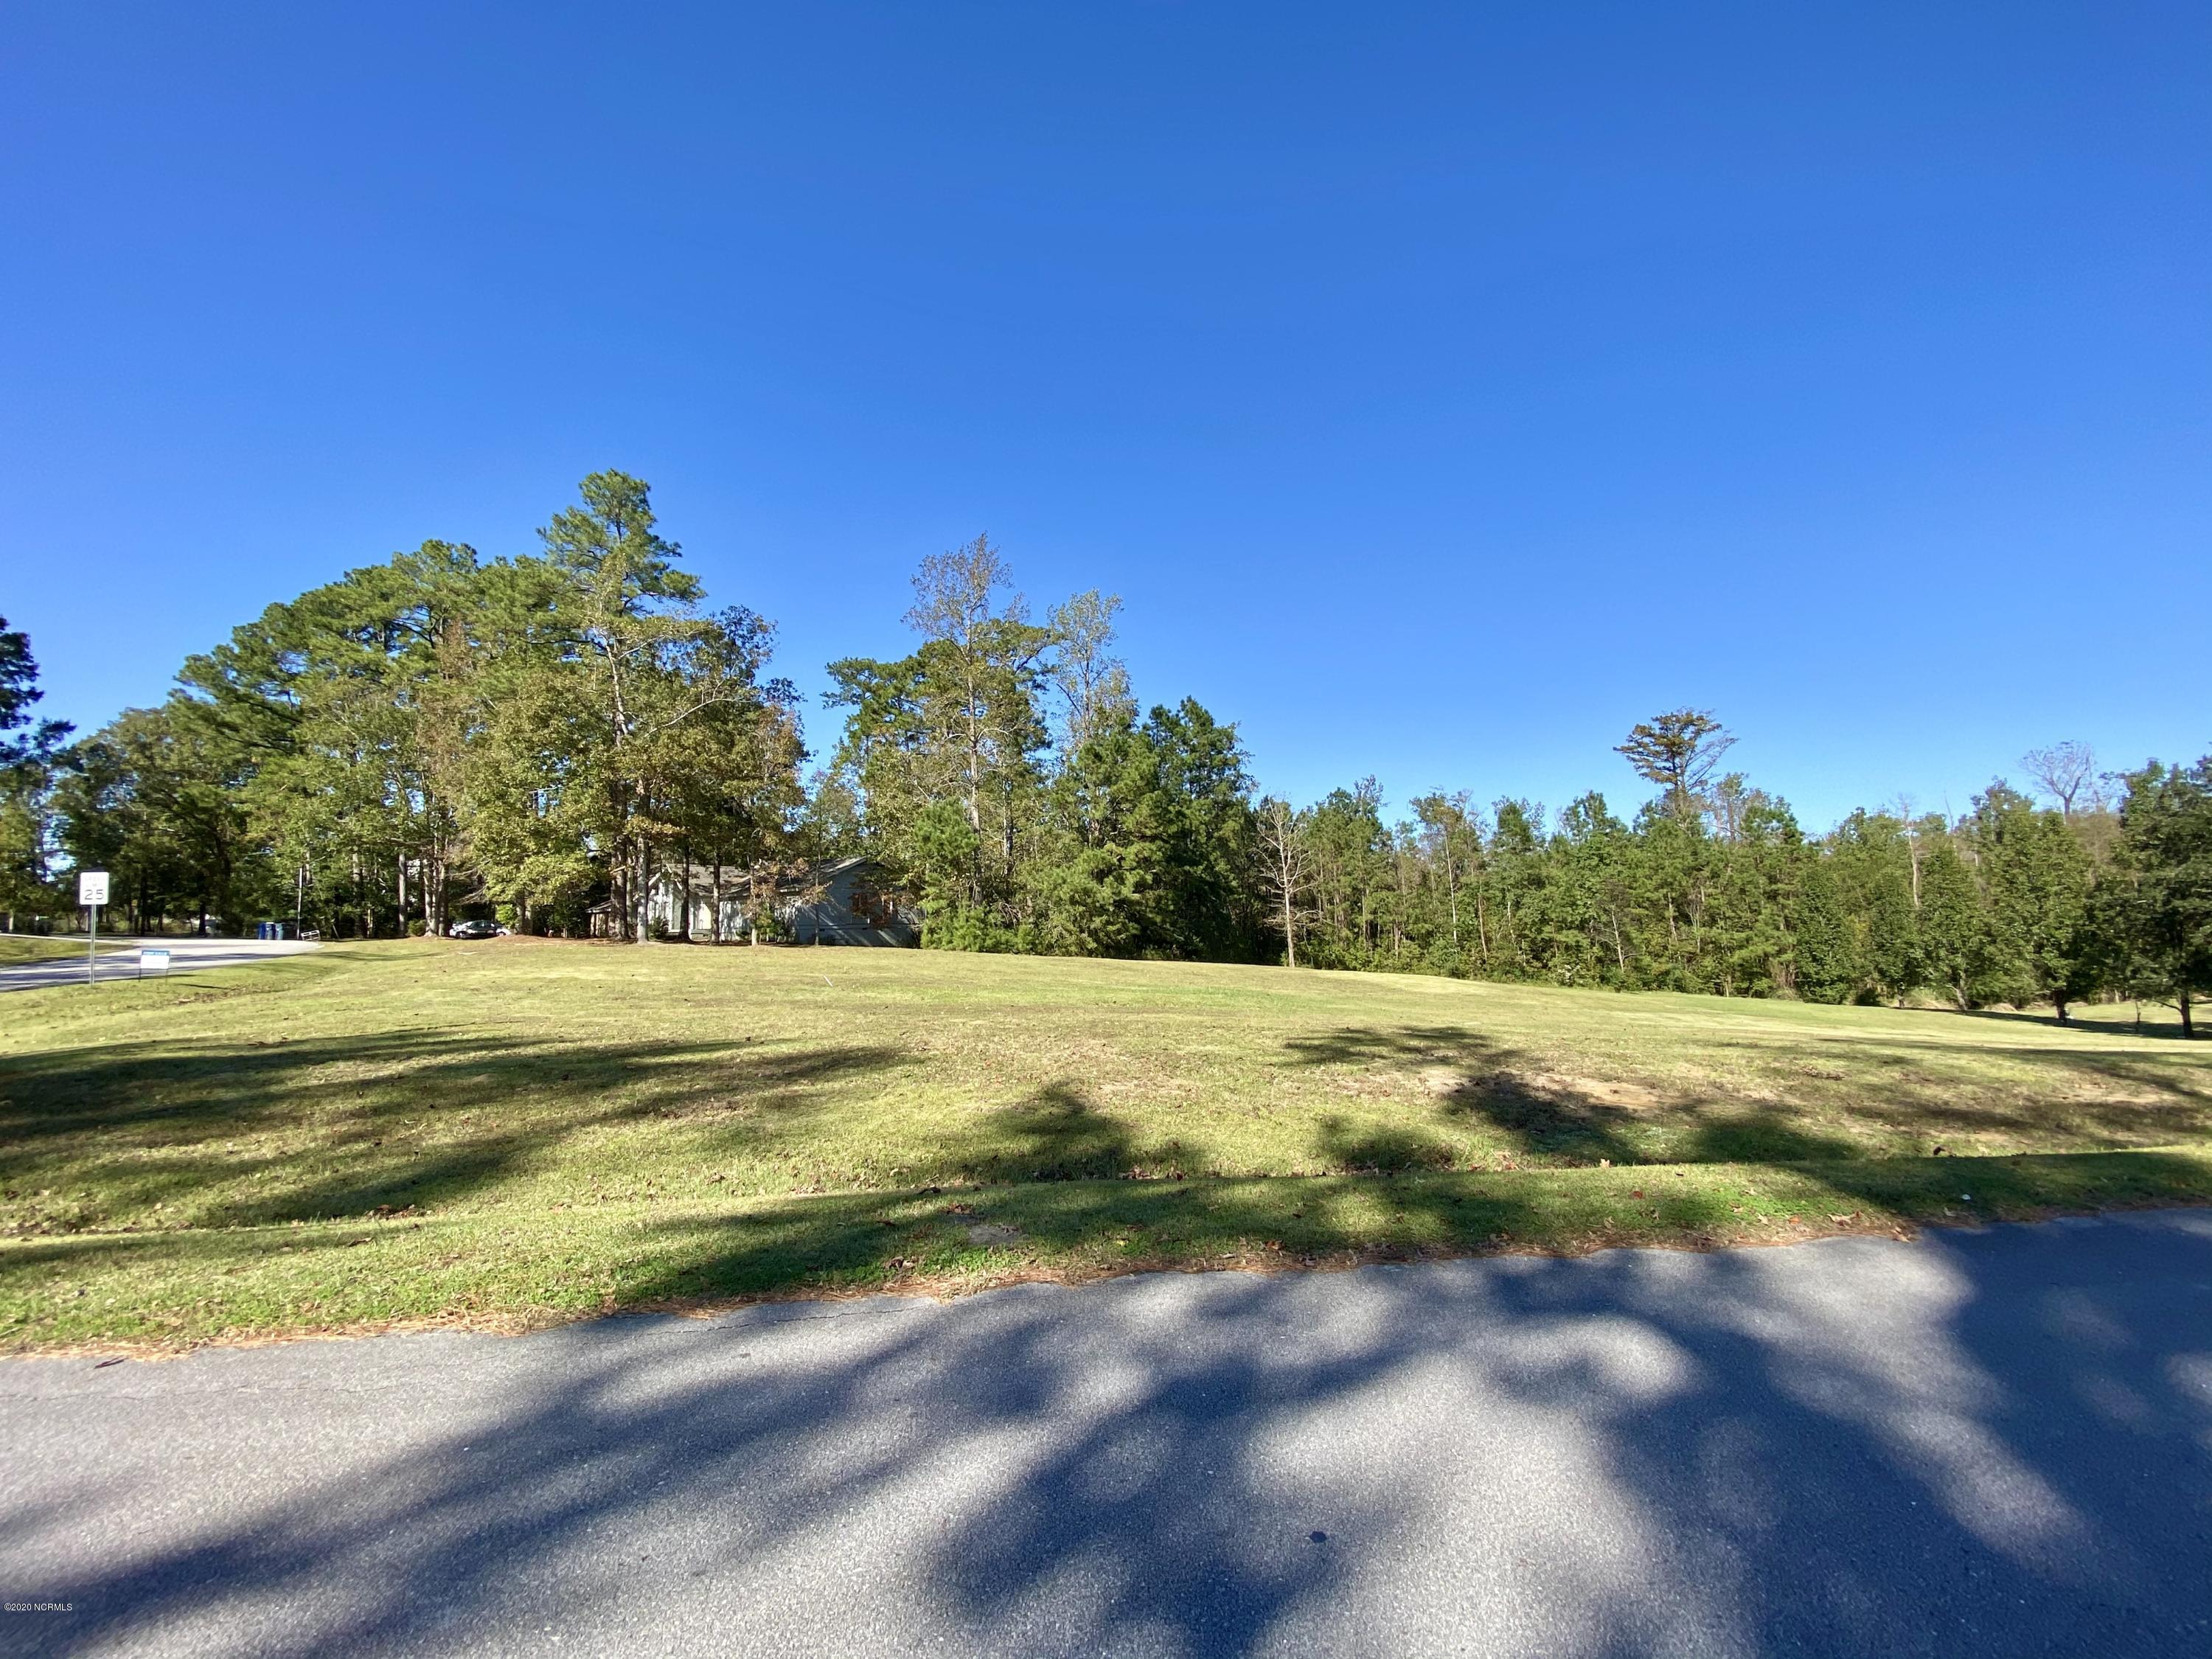 Price reduced! Build your custom dream home on this cleared .54 acre lot in Country Club! This gorgeous piece of property is situated on the corner of Country Club Drive and Greenway Road. The property is currently part of a 1.18 acre lot but owner will divide.  Call for more info!